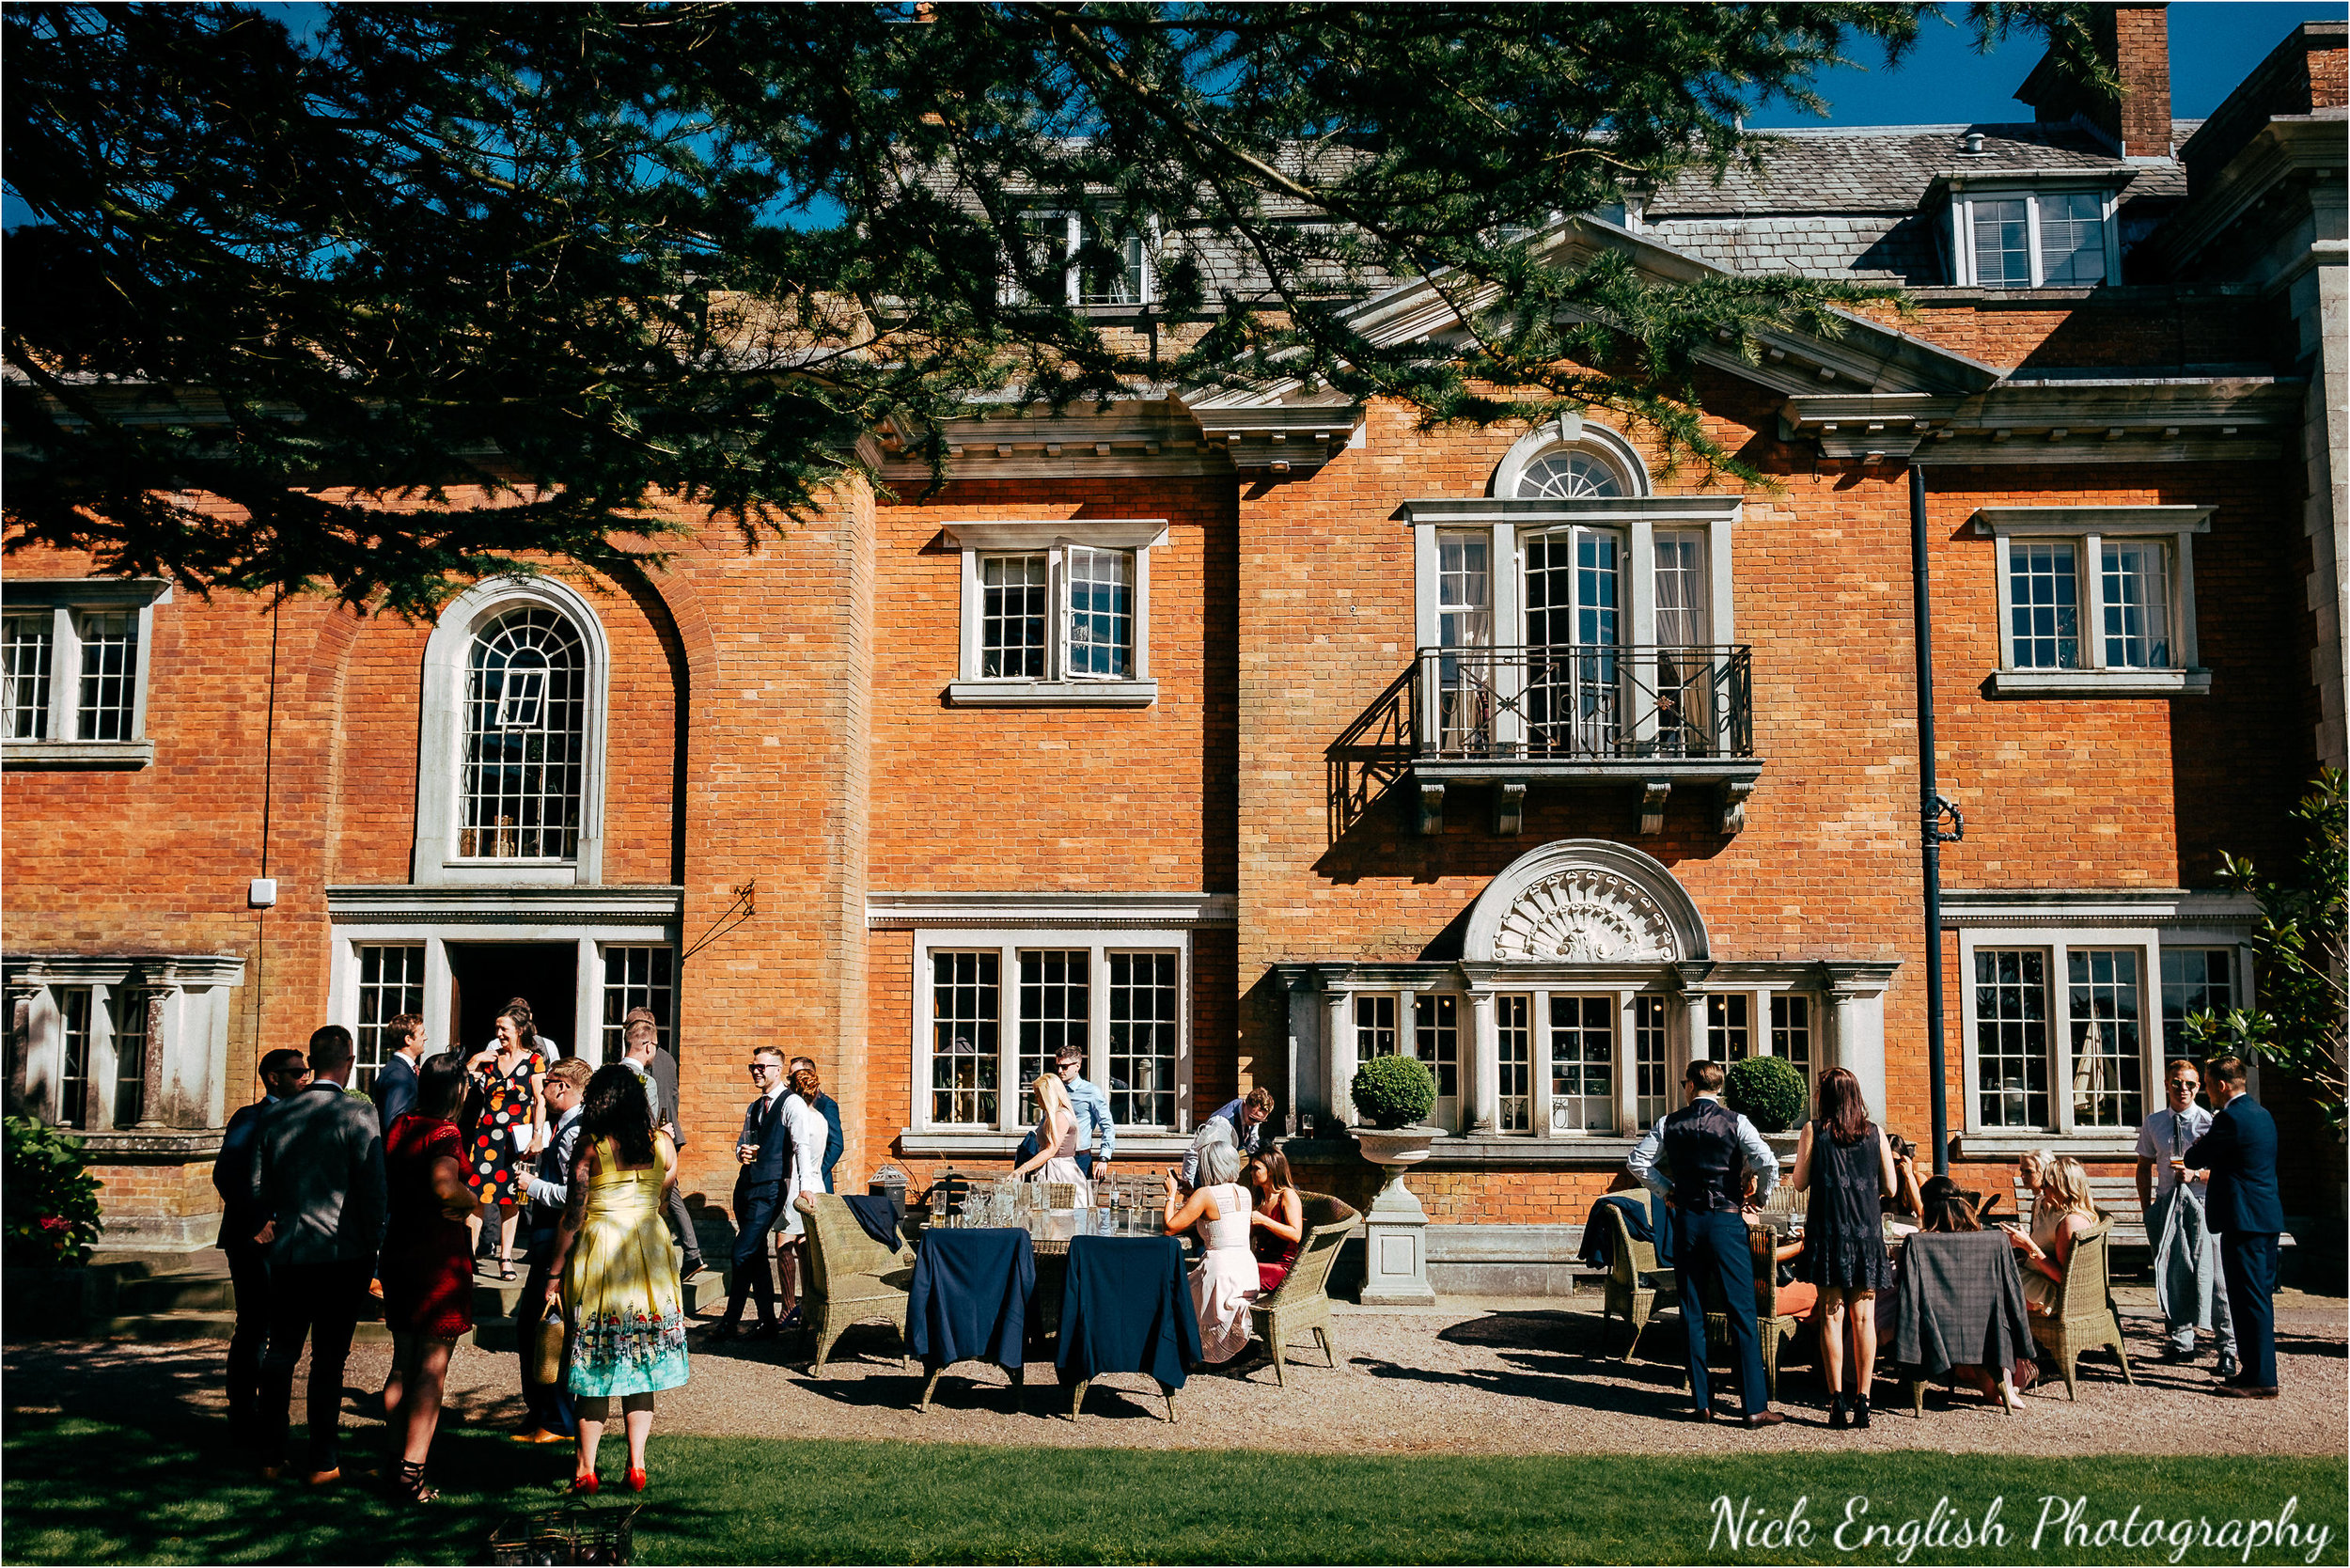 Eaves_Hall_Wedding_Photographs_Nick_English_Photography-82.jpg